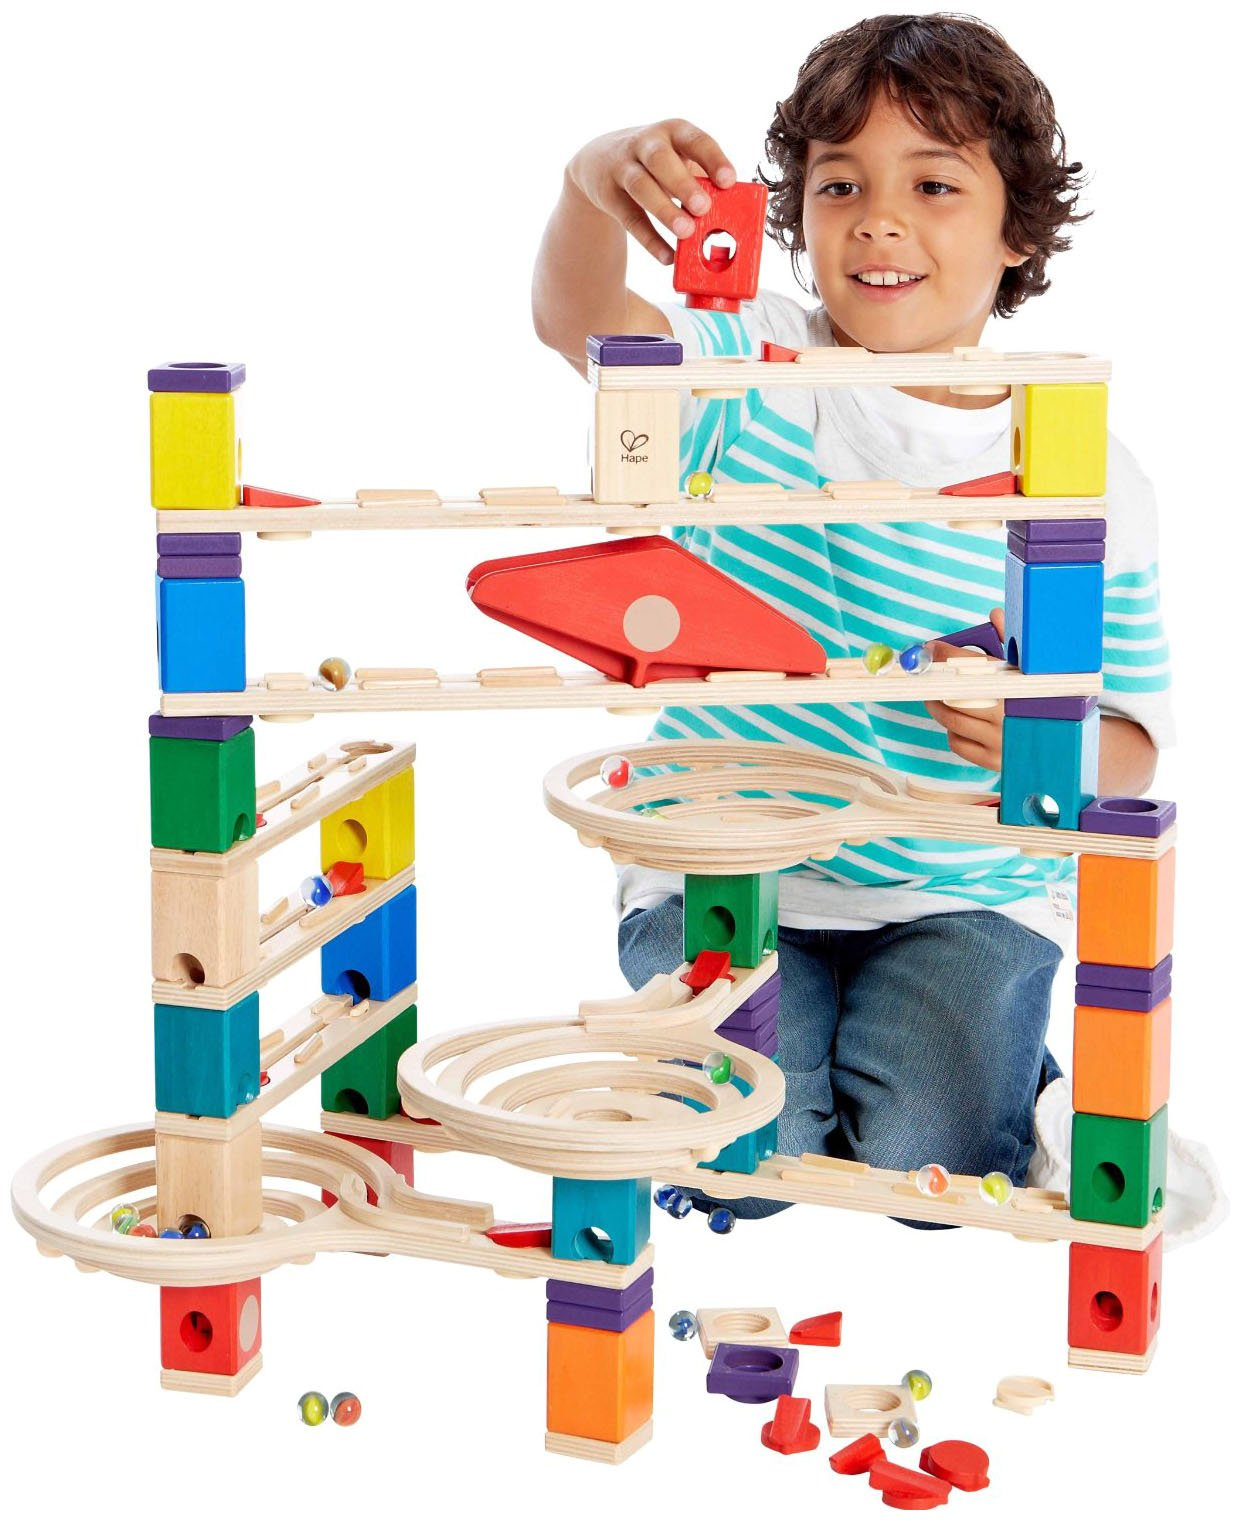 Person, How Children's Educational Toys Develop Essential Learning Skills